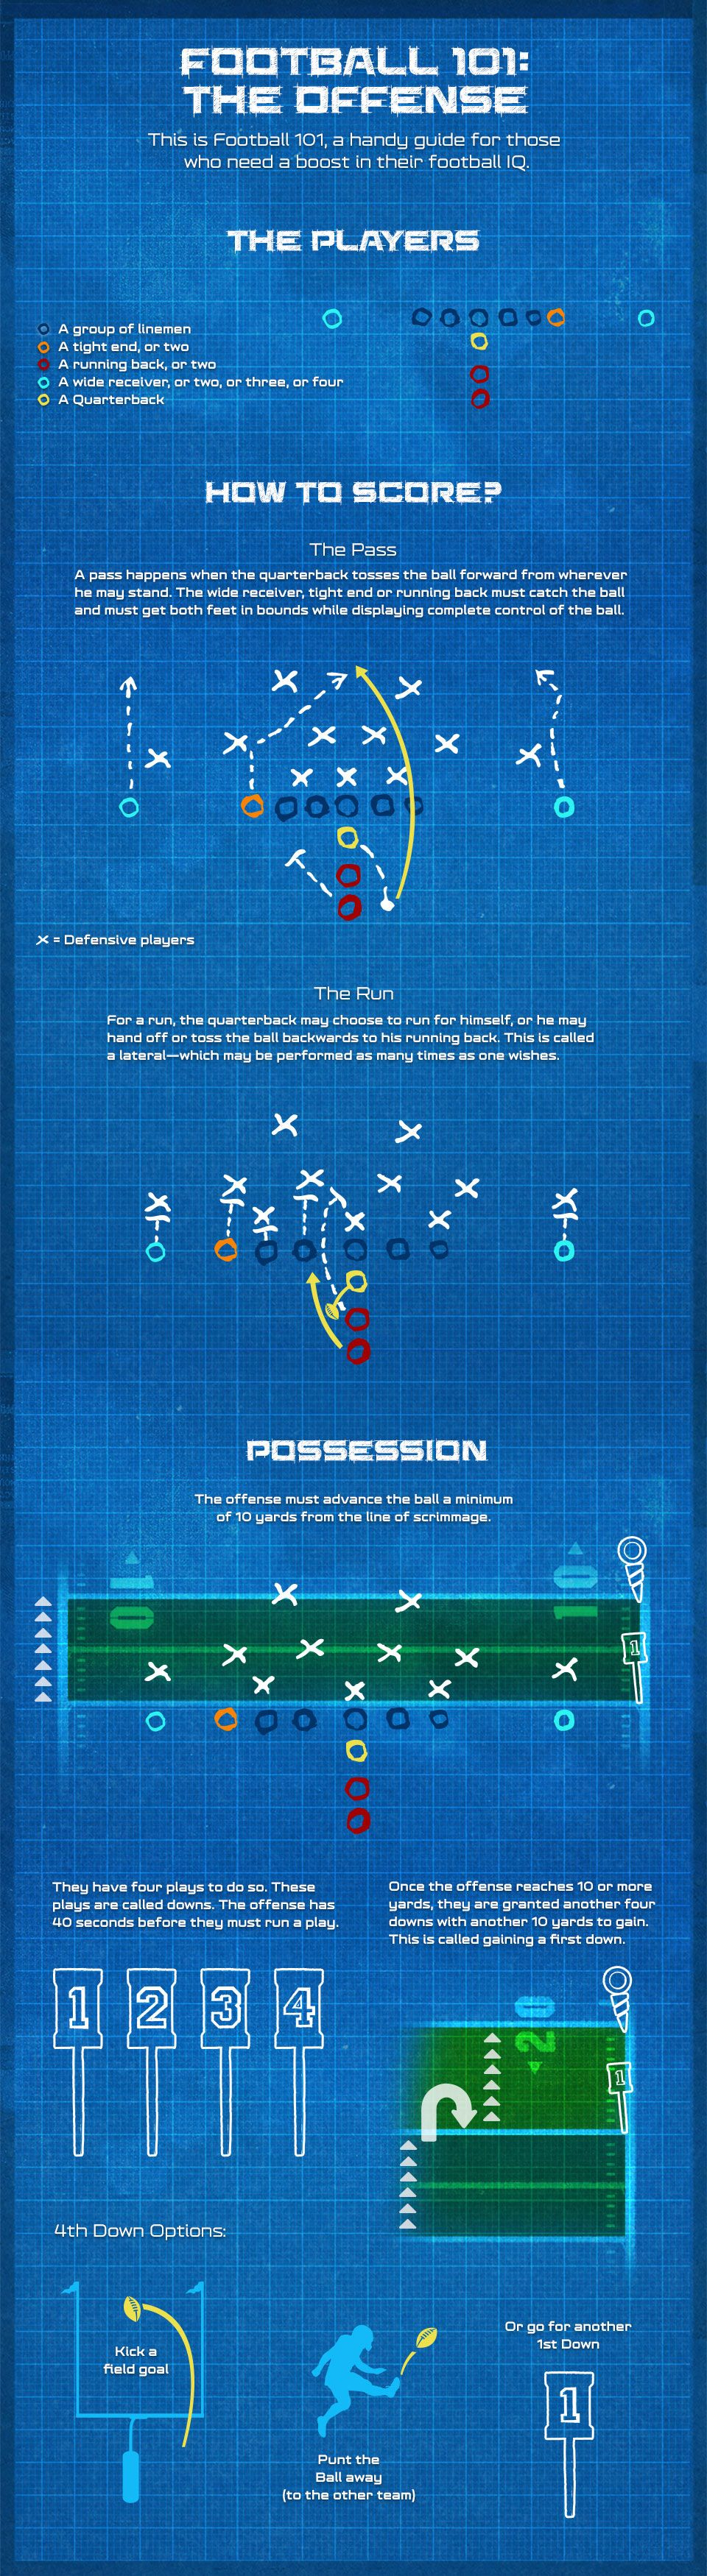 Football 101: Offense - NFL.com